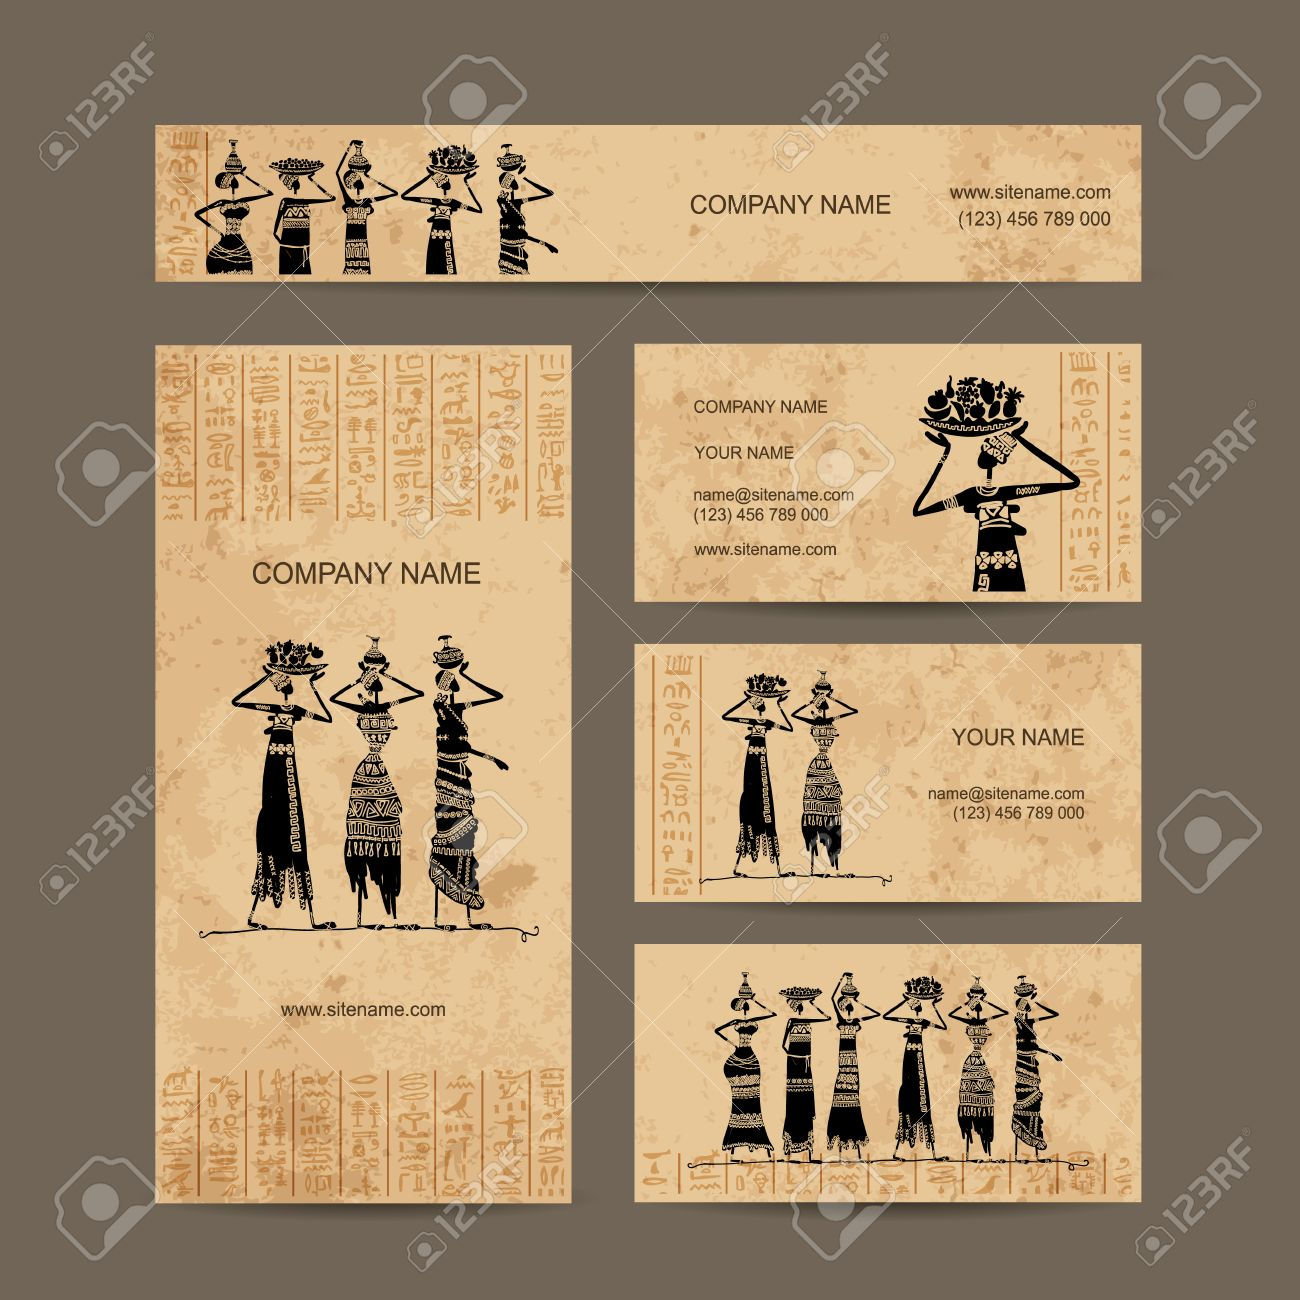 Sketch Of Egypt Women With Jugs. Business Cards Design, Vector ...